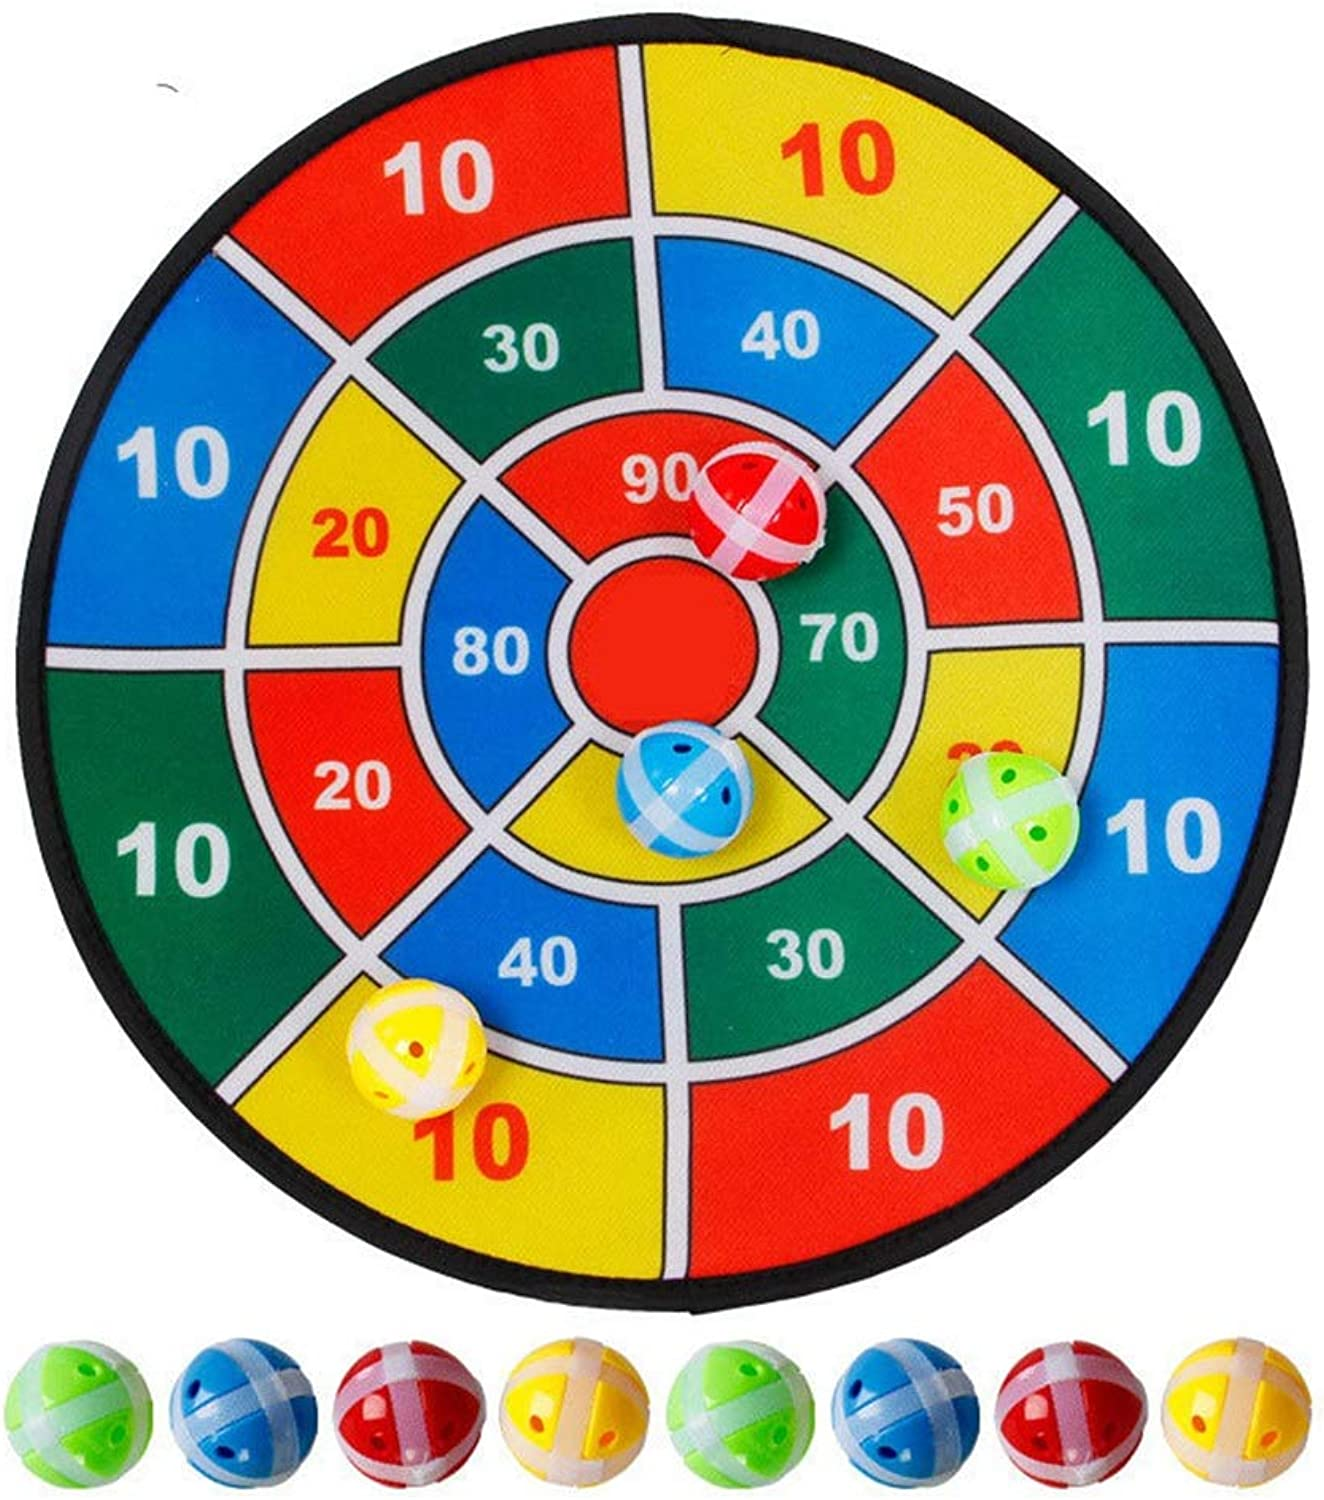 Early Educational Toddler Toys Abric Dart Board Game with 6 Balls Using Hook-and-Loop Fasteners   Large - 14.5 Inches (37 cm) Diameter   Safe for Kids for 1-3 Year Old Kids